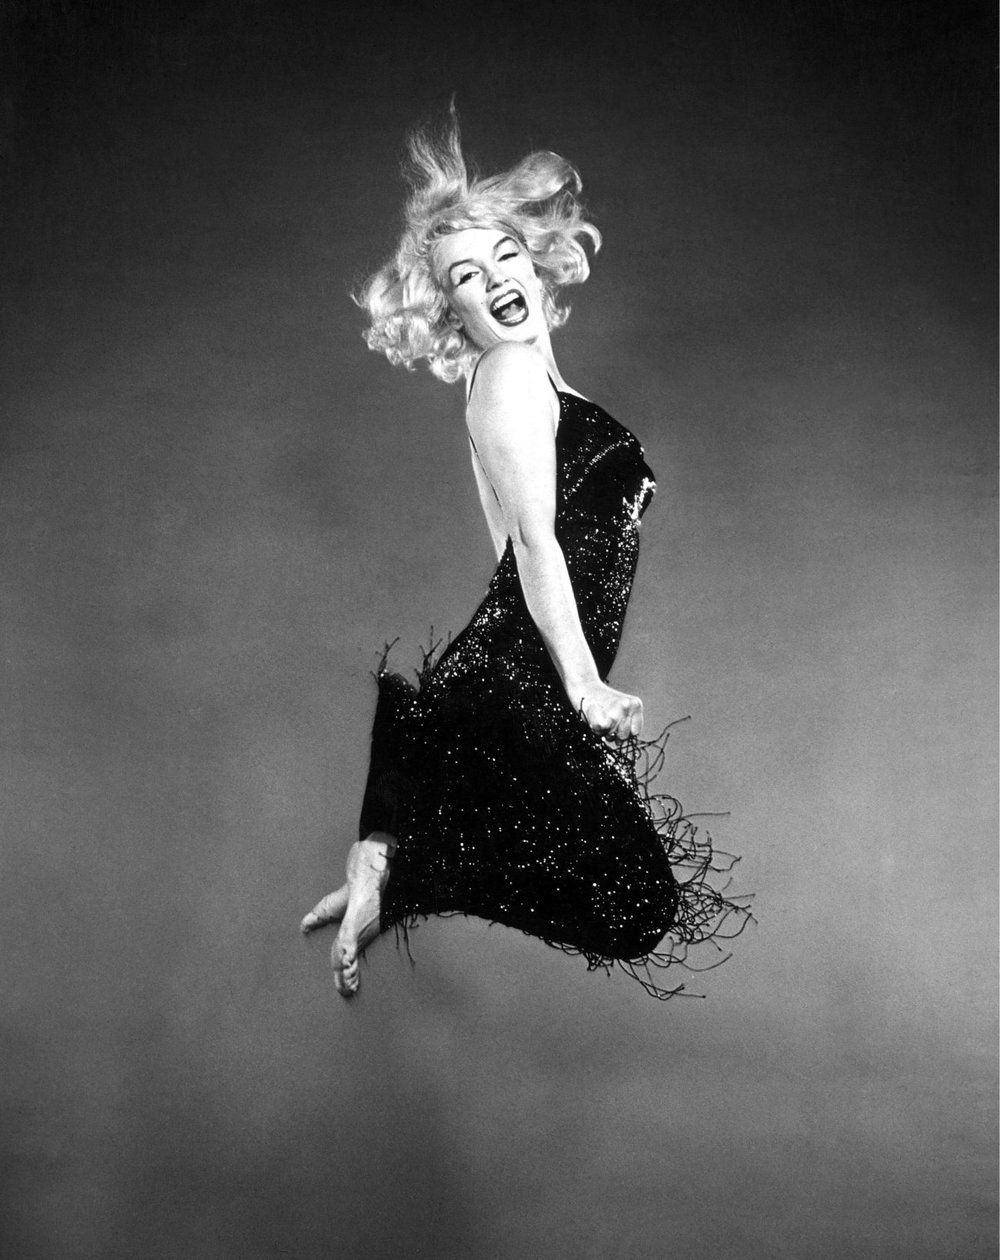 Philippe Halsman, Jumpology, 1959.